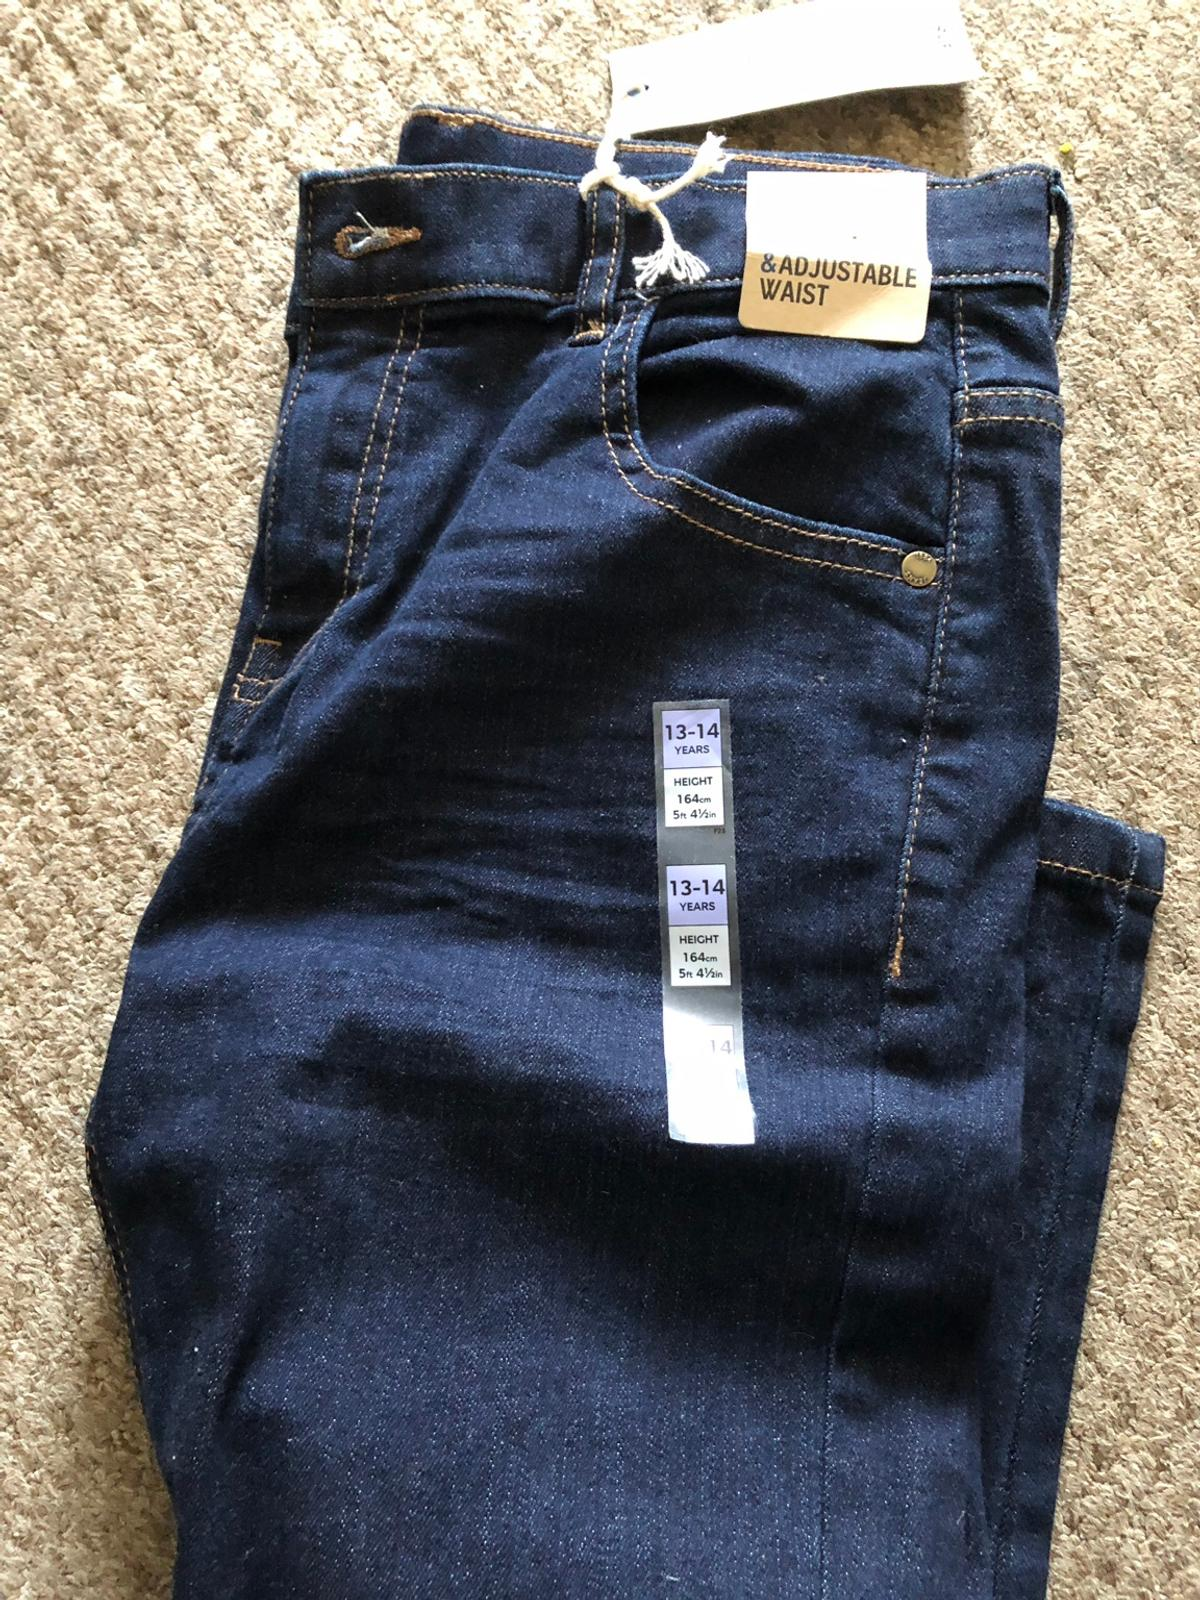 Boys , skinny leg jeans. Brand new, given as gift, too skinny for our tastes.